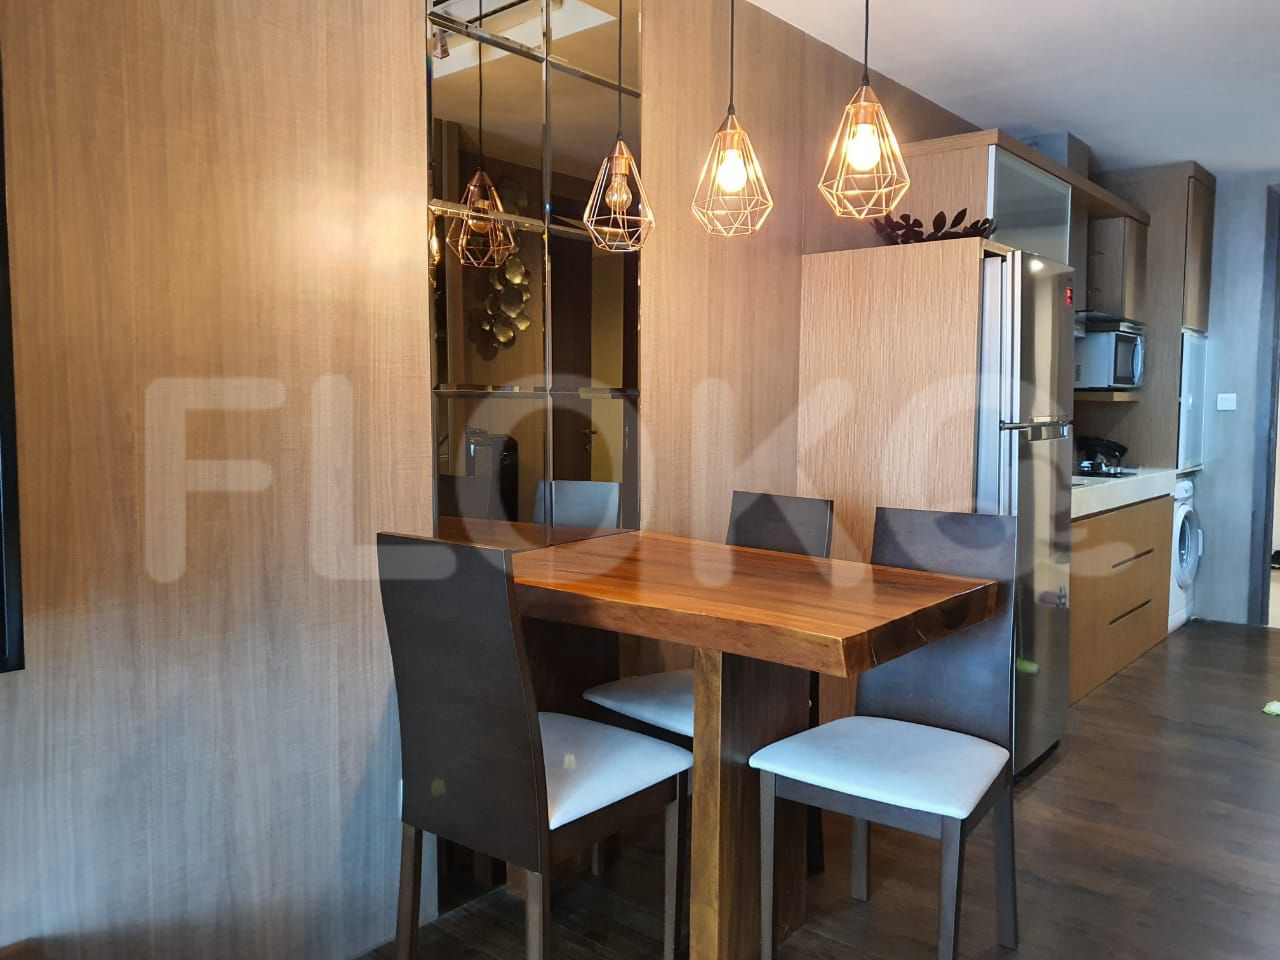 Rent Studio on 12th Floor, Pay Monthly, Kemang Village Residence